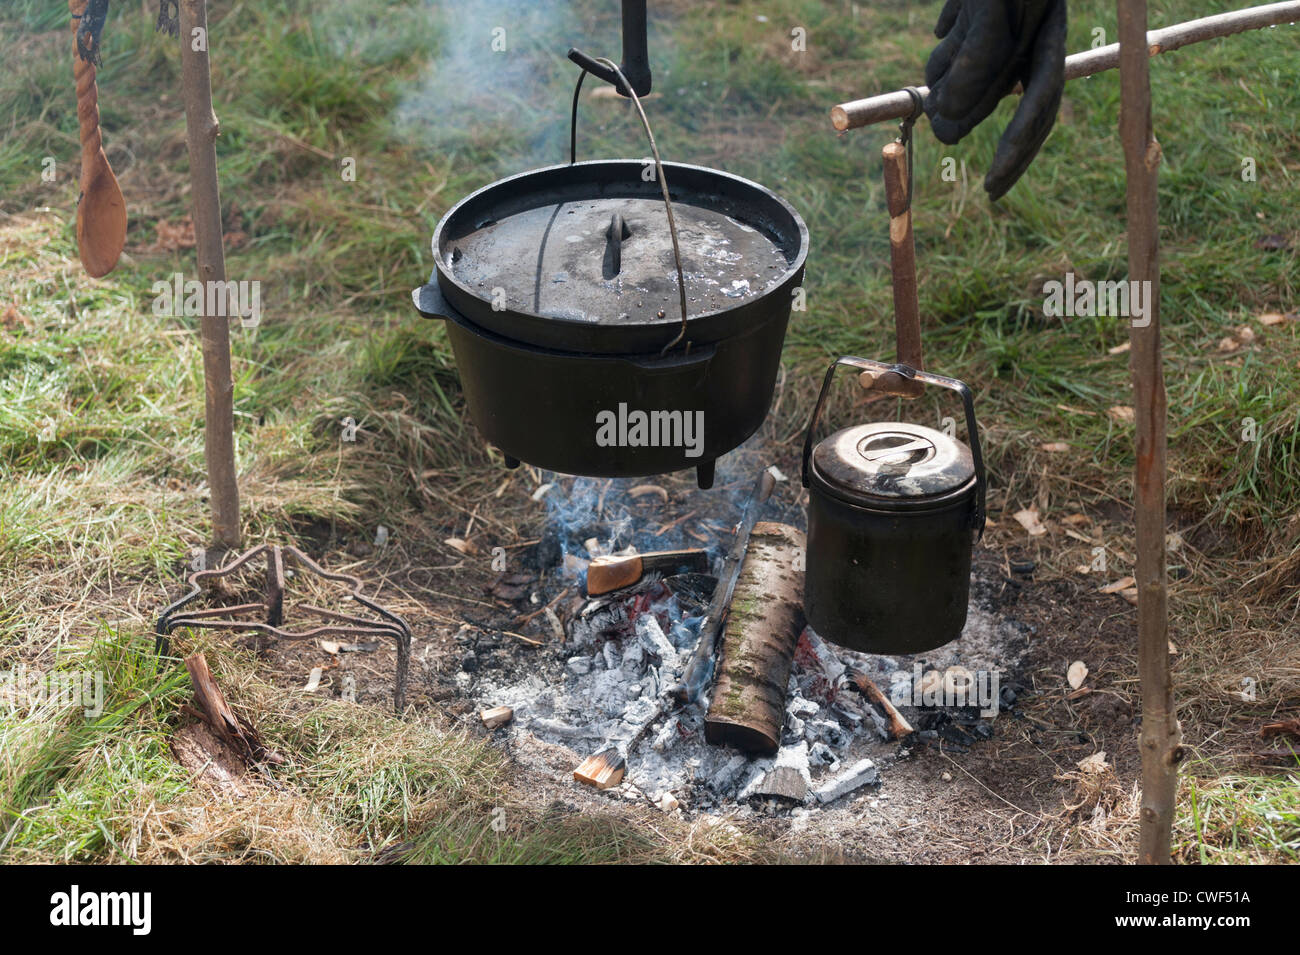 Cast Iron Pot Campfire With Cast Iron Pots And Pans Hanging Over A Wood